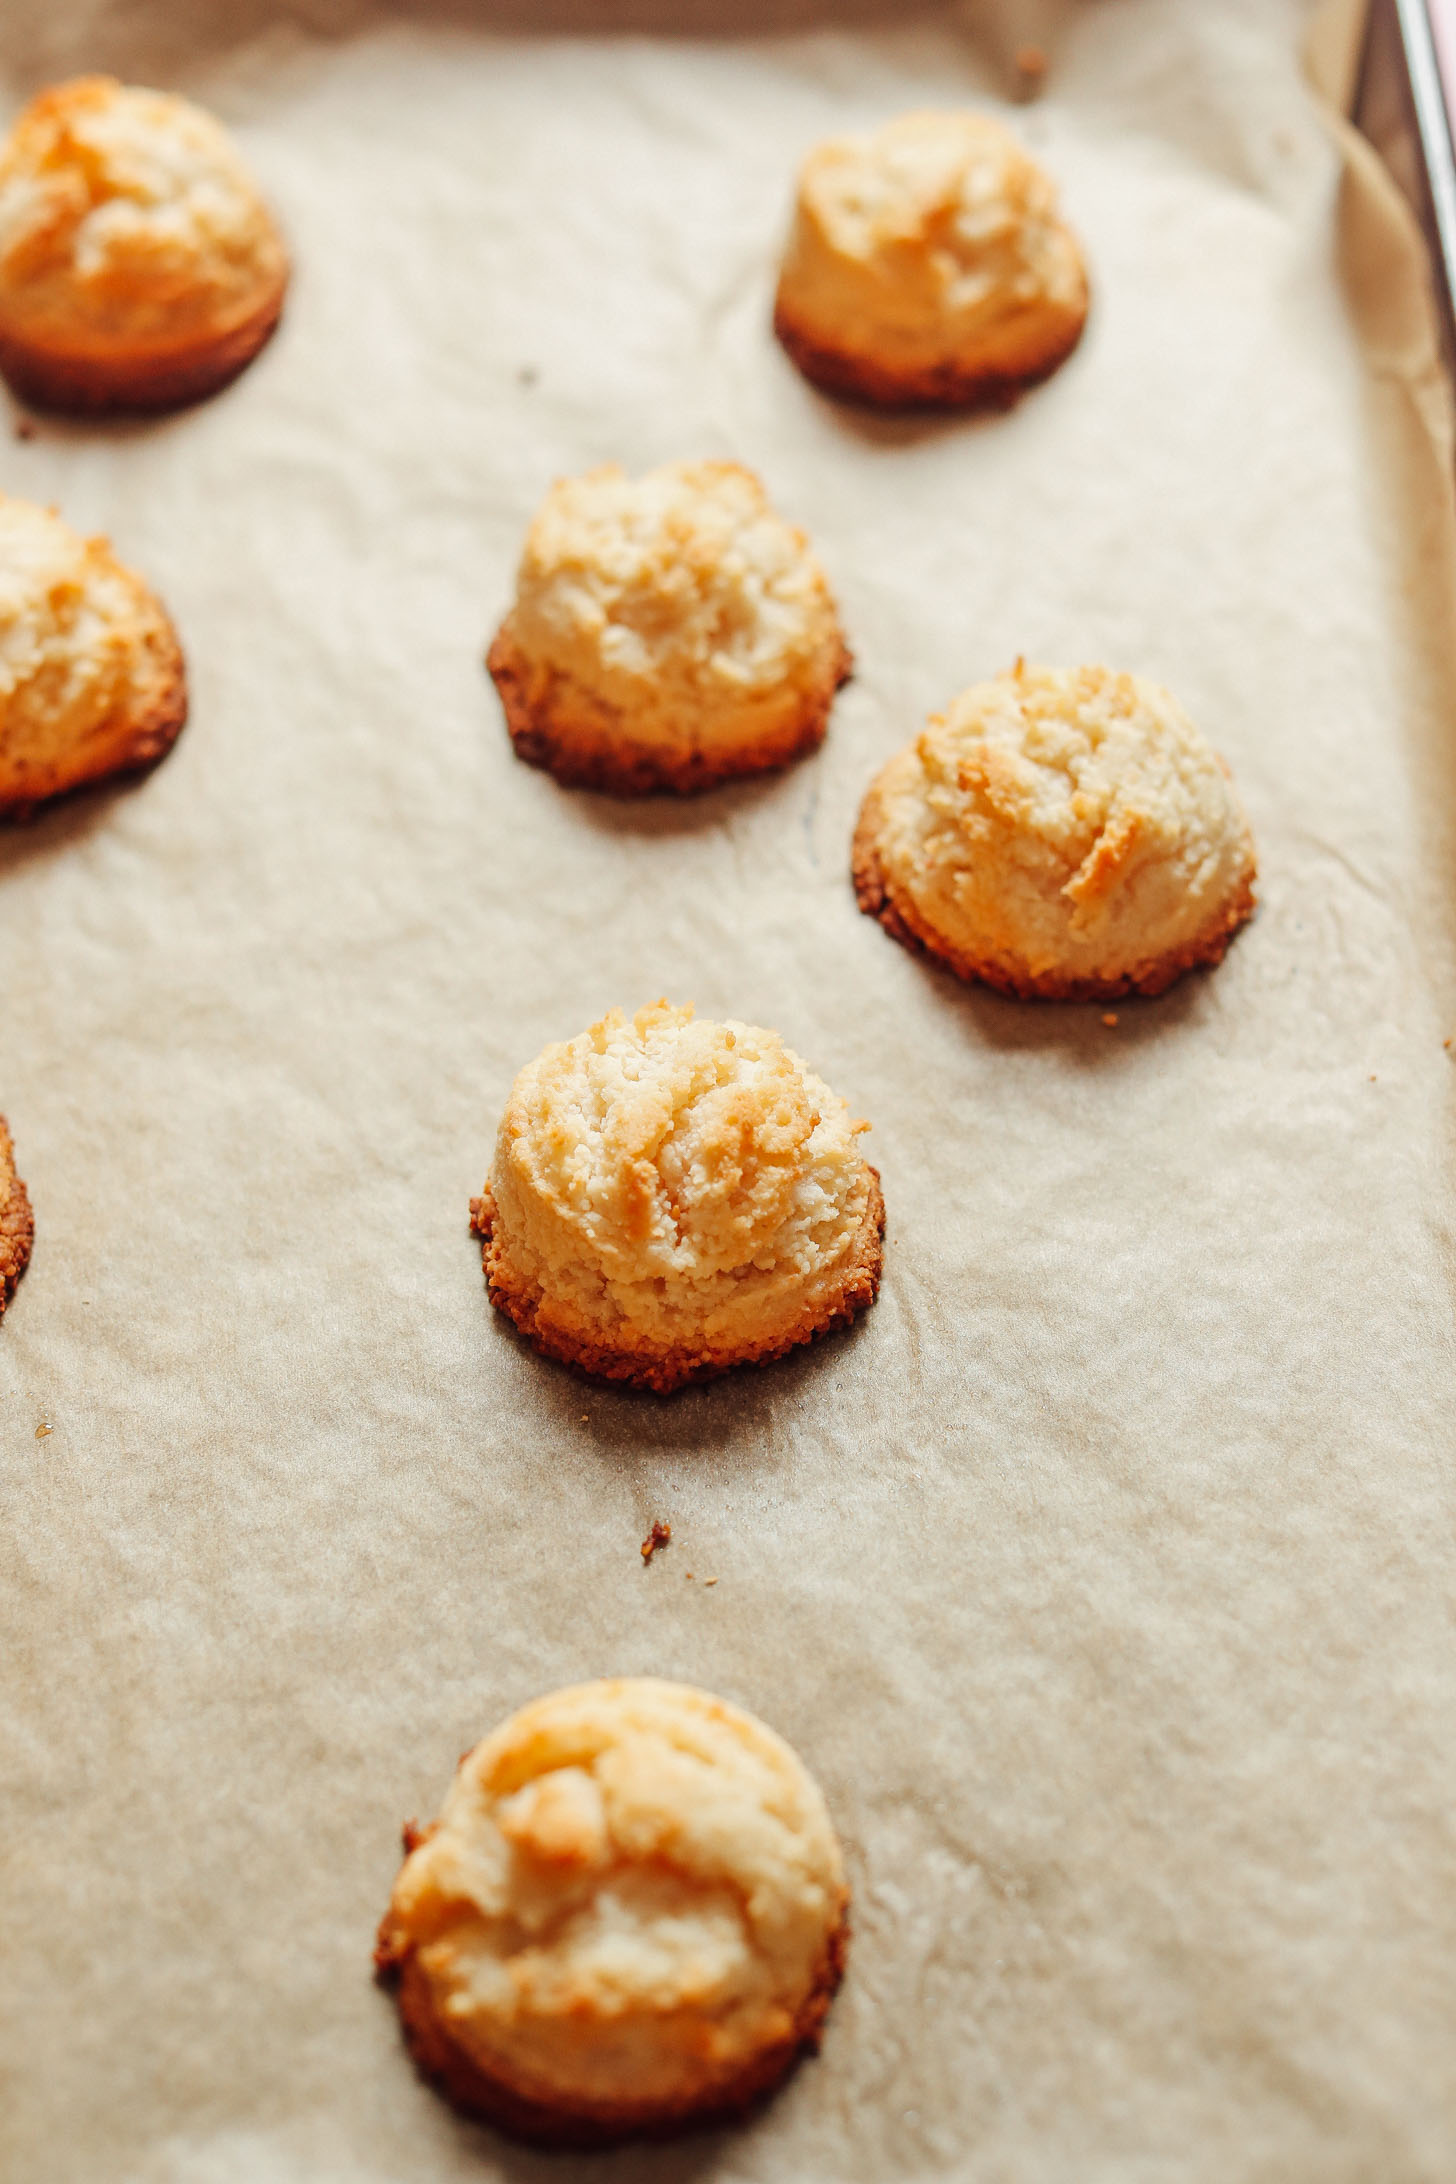 Parchment-lined baking sheet with a batch of freshly baked Vegan Coconut Snowball Cookies